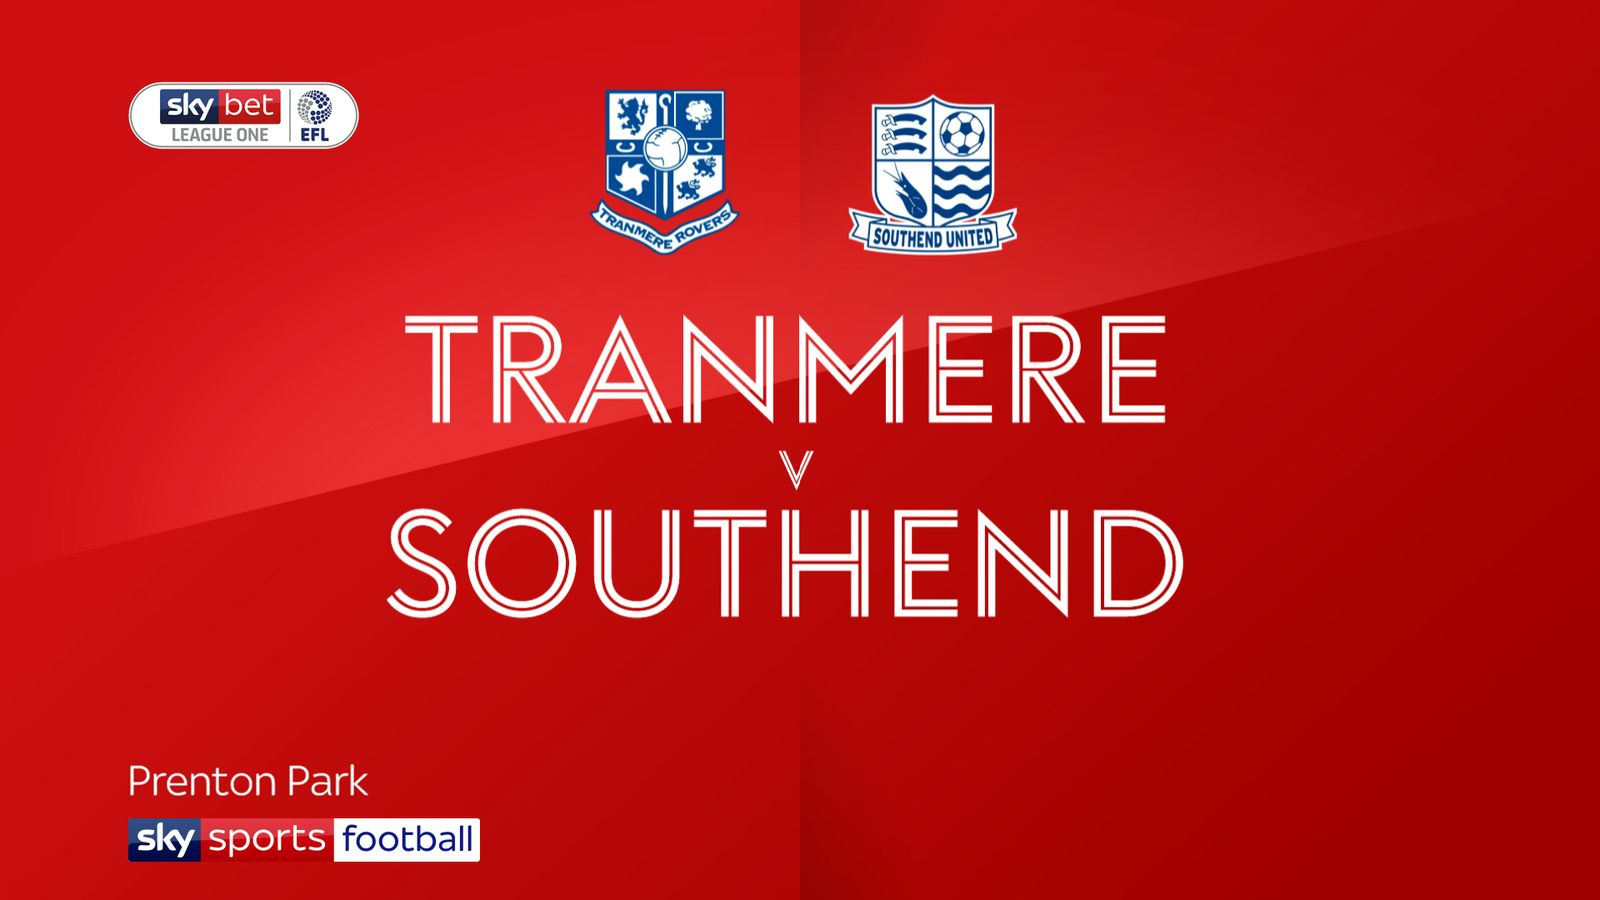 Tranmere 1-1 Southend: Paul Mullin penalty salvages point for Rovers